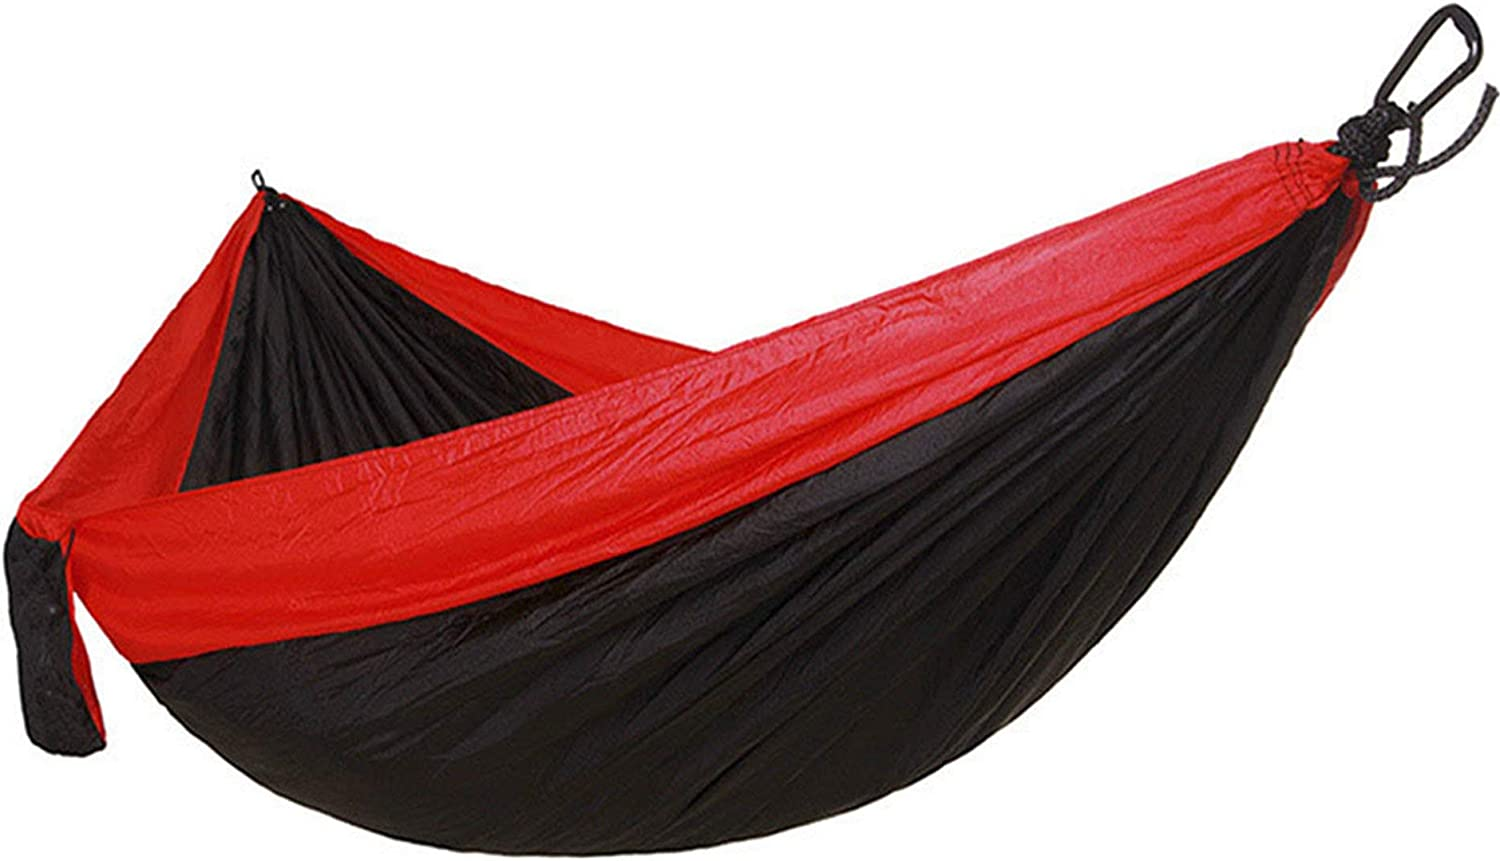 Double Camping Hammock Ranking TOP11 with Tree Parach Straps-Portable security